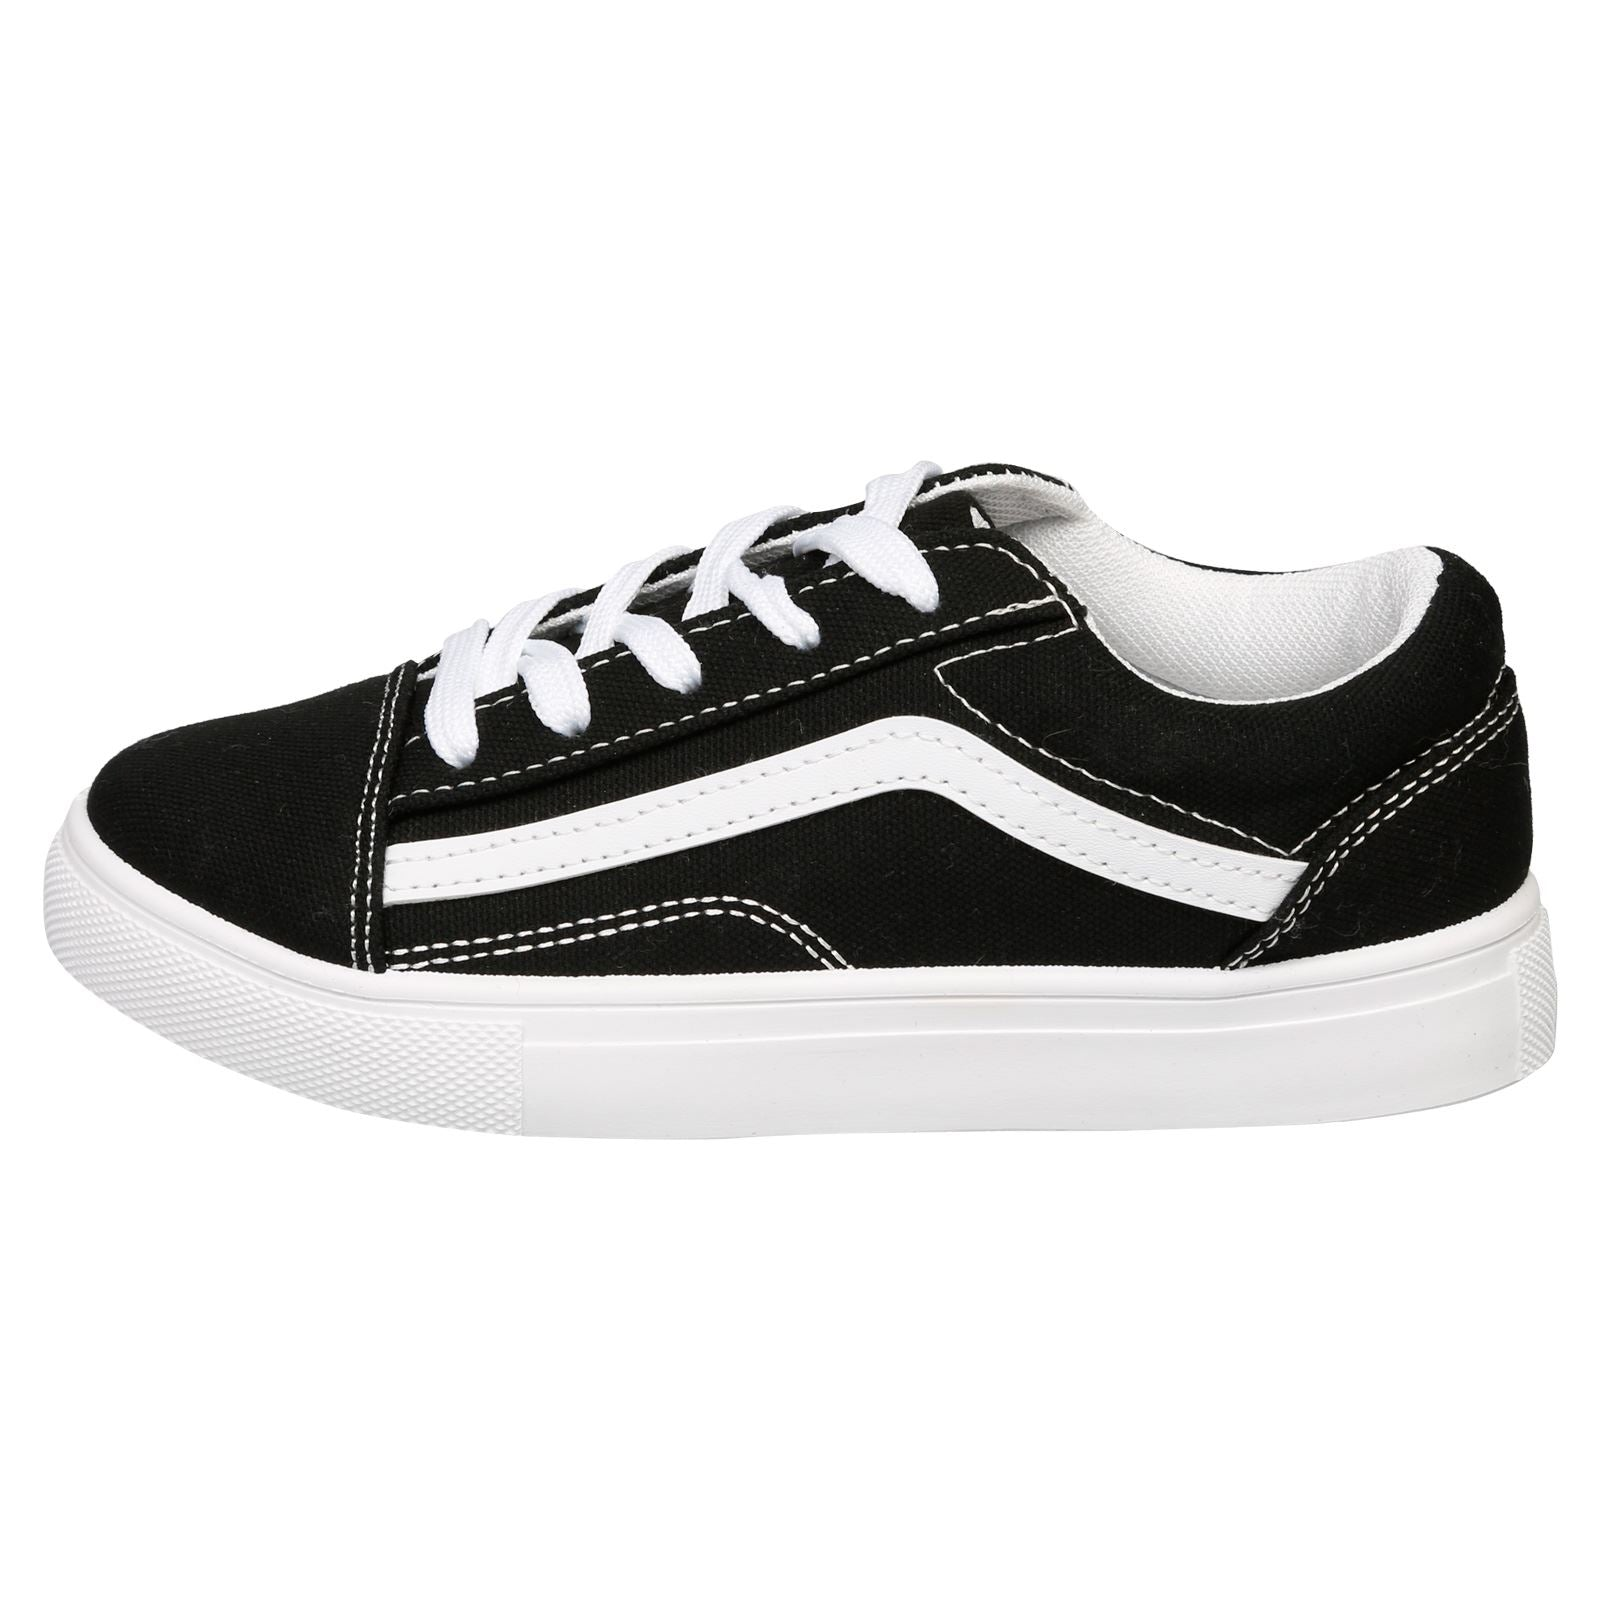 Hailee Girls Lace Up Trainers in Black / White - Feet First Fashion